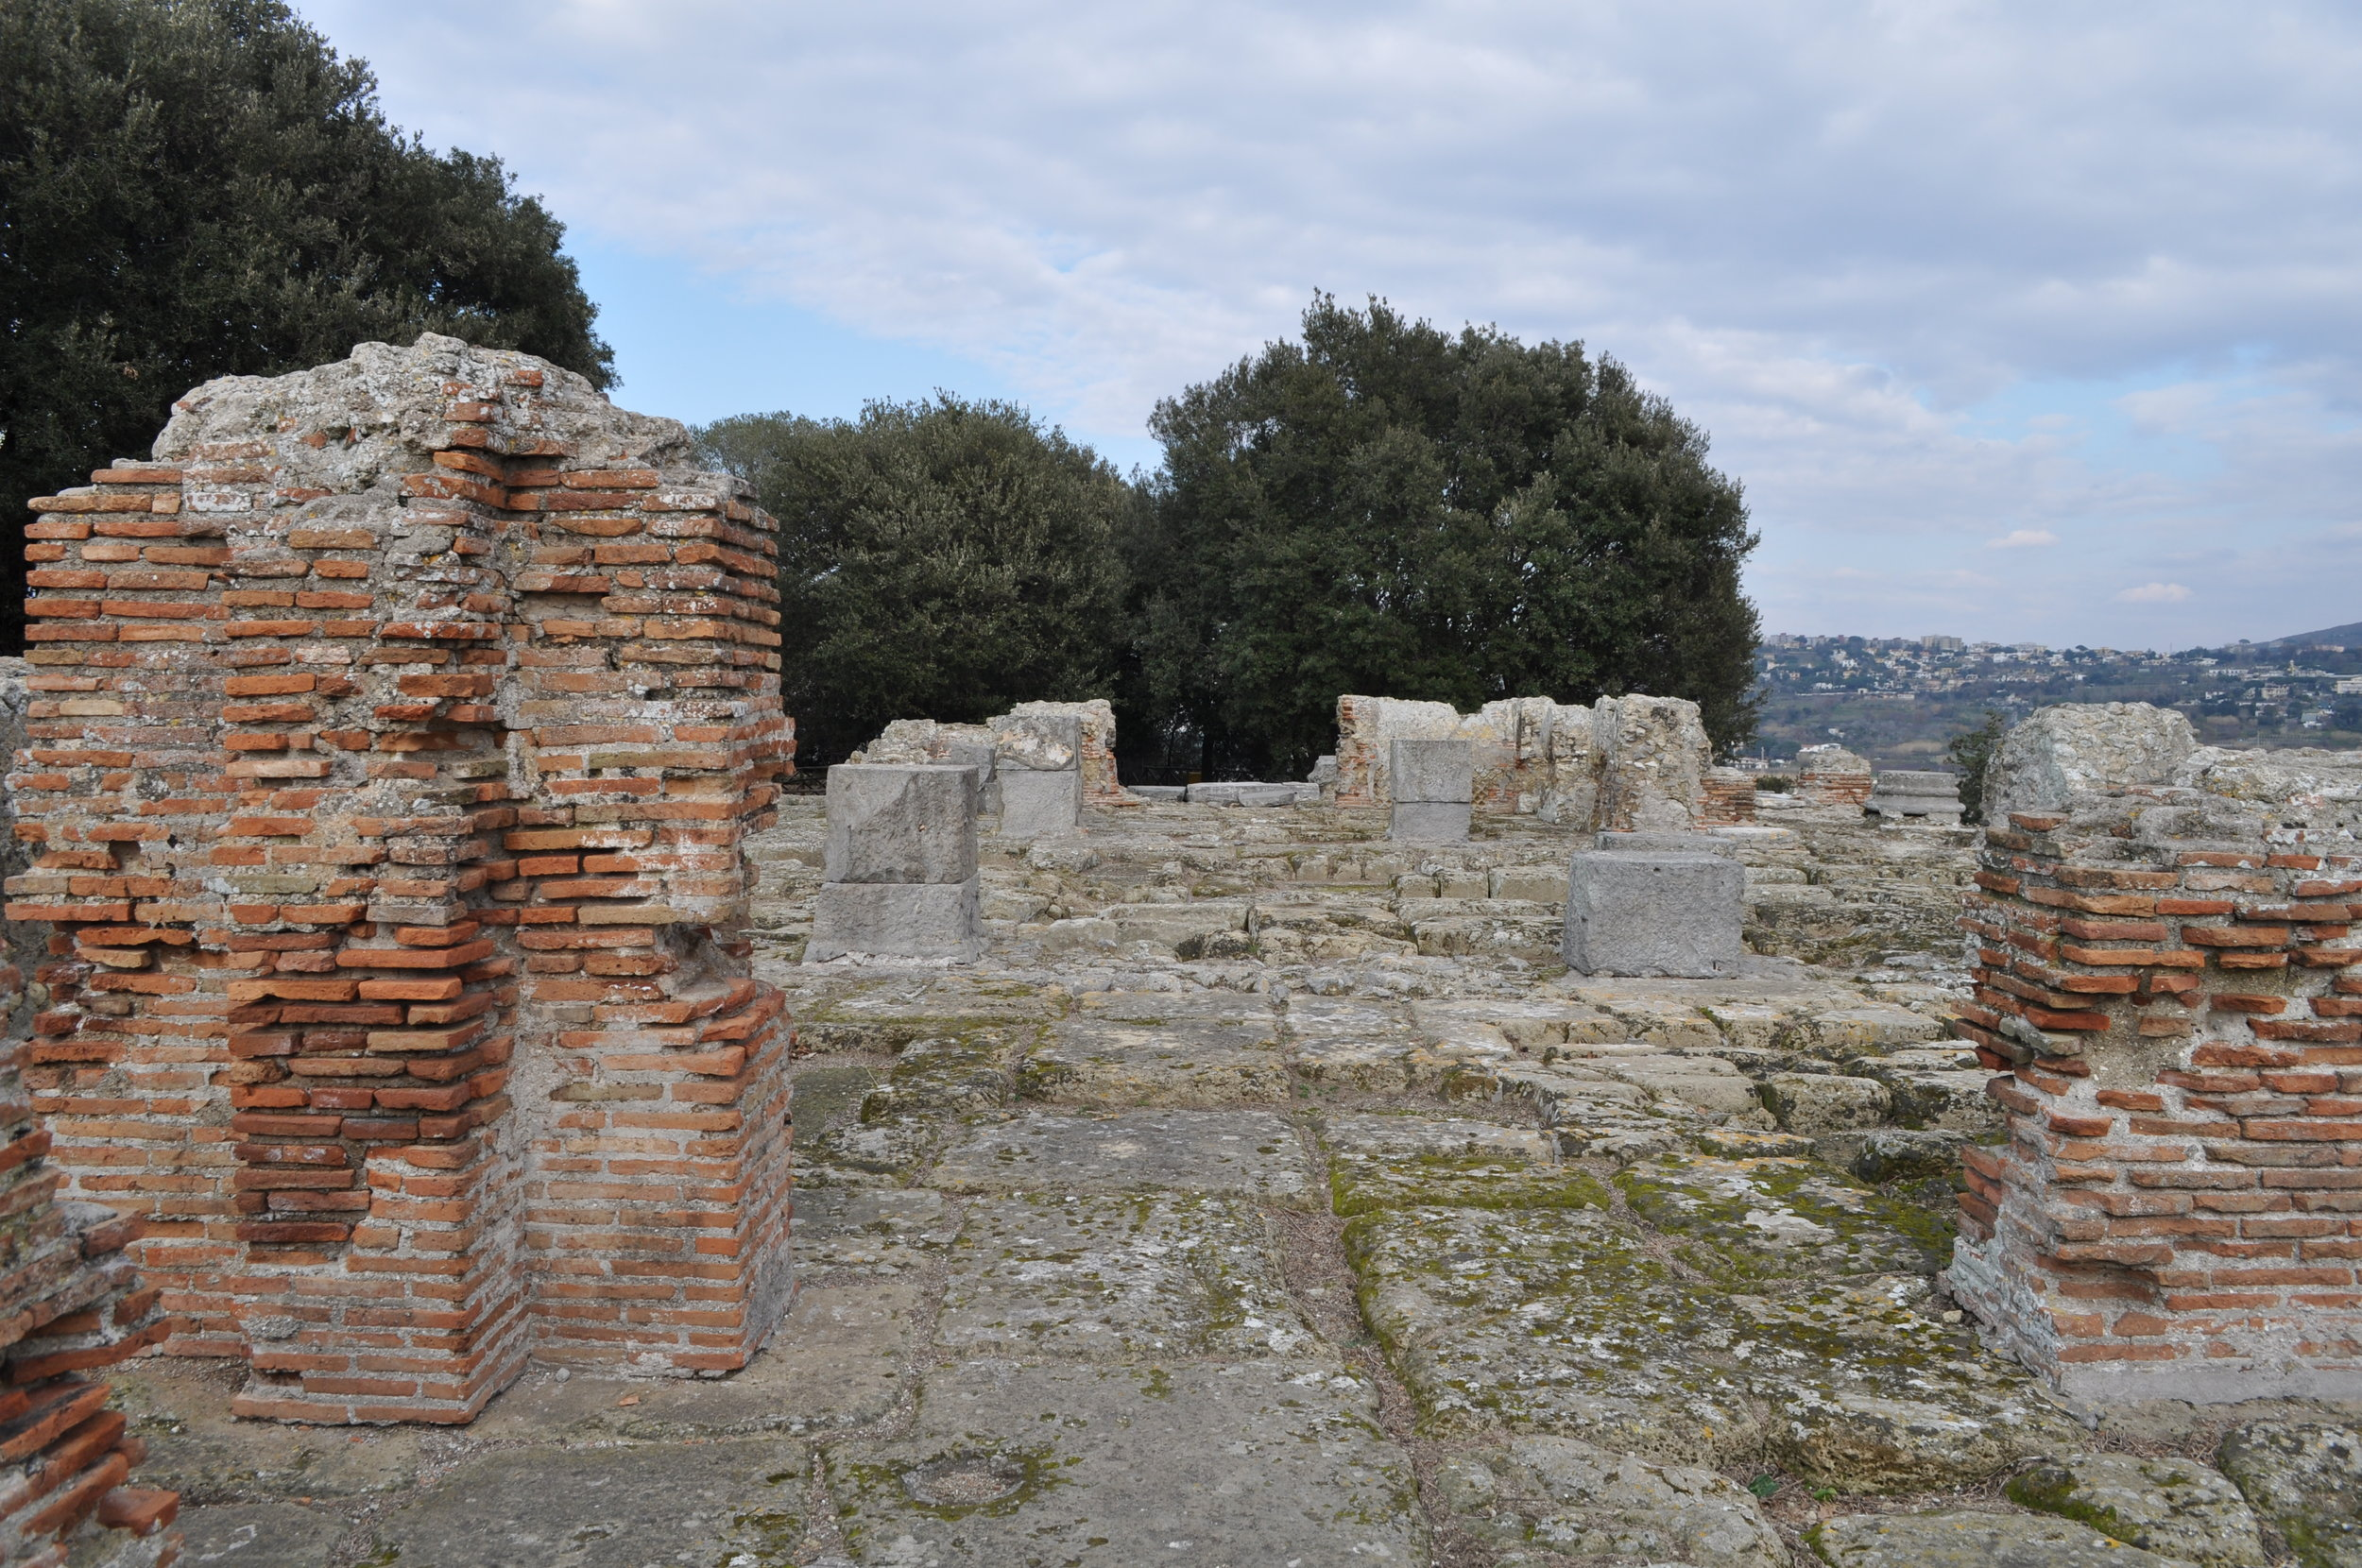 Daedalus' Temple of Apolla, Cumae, Italy. By Rosina Khan